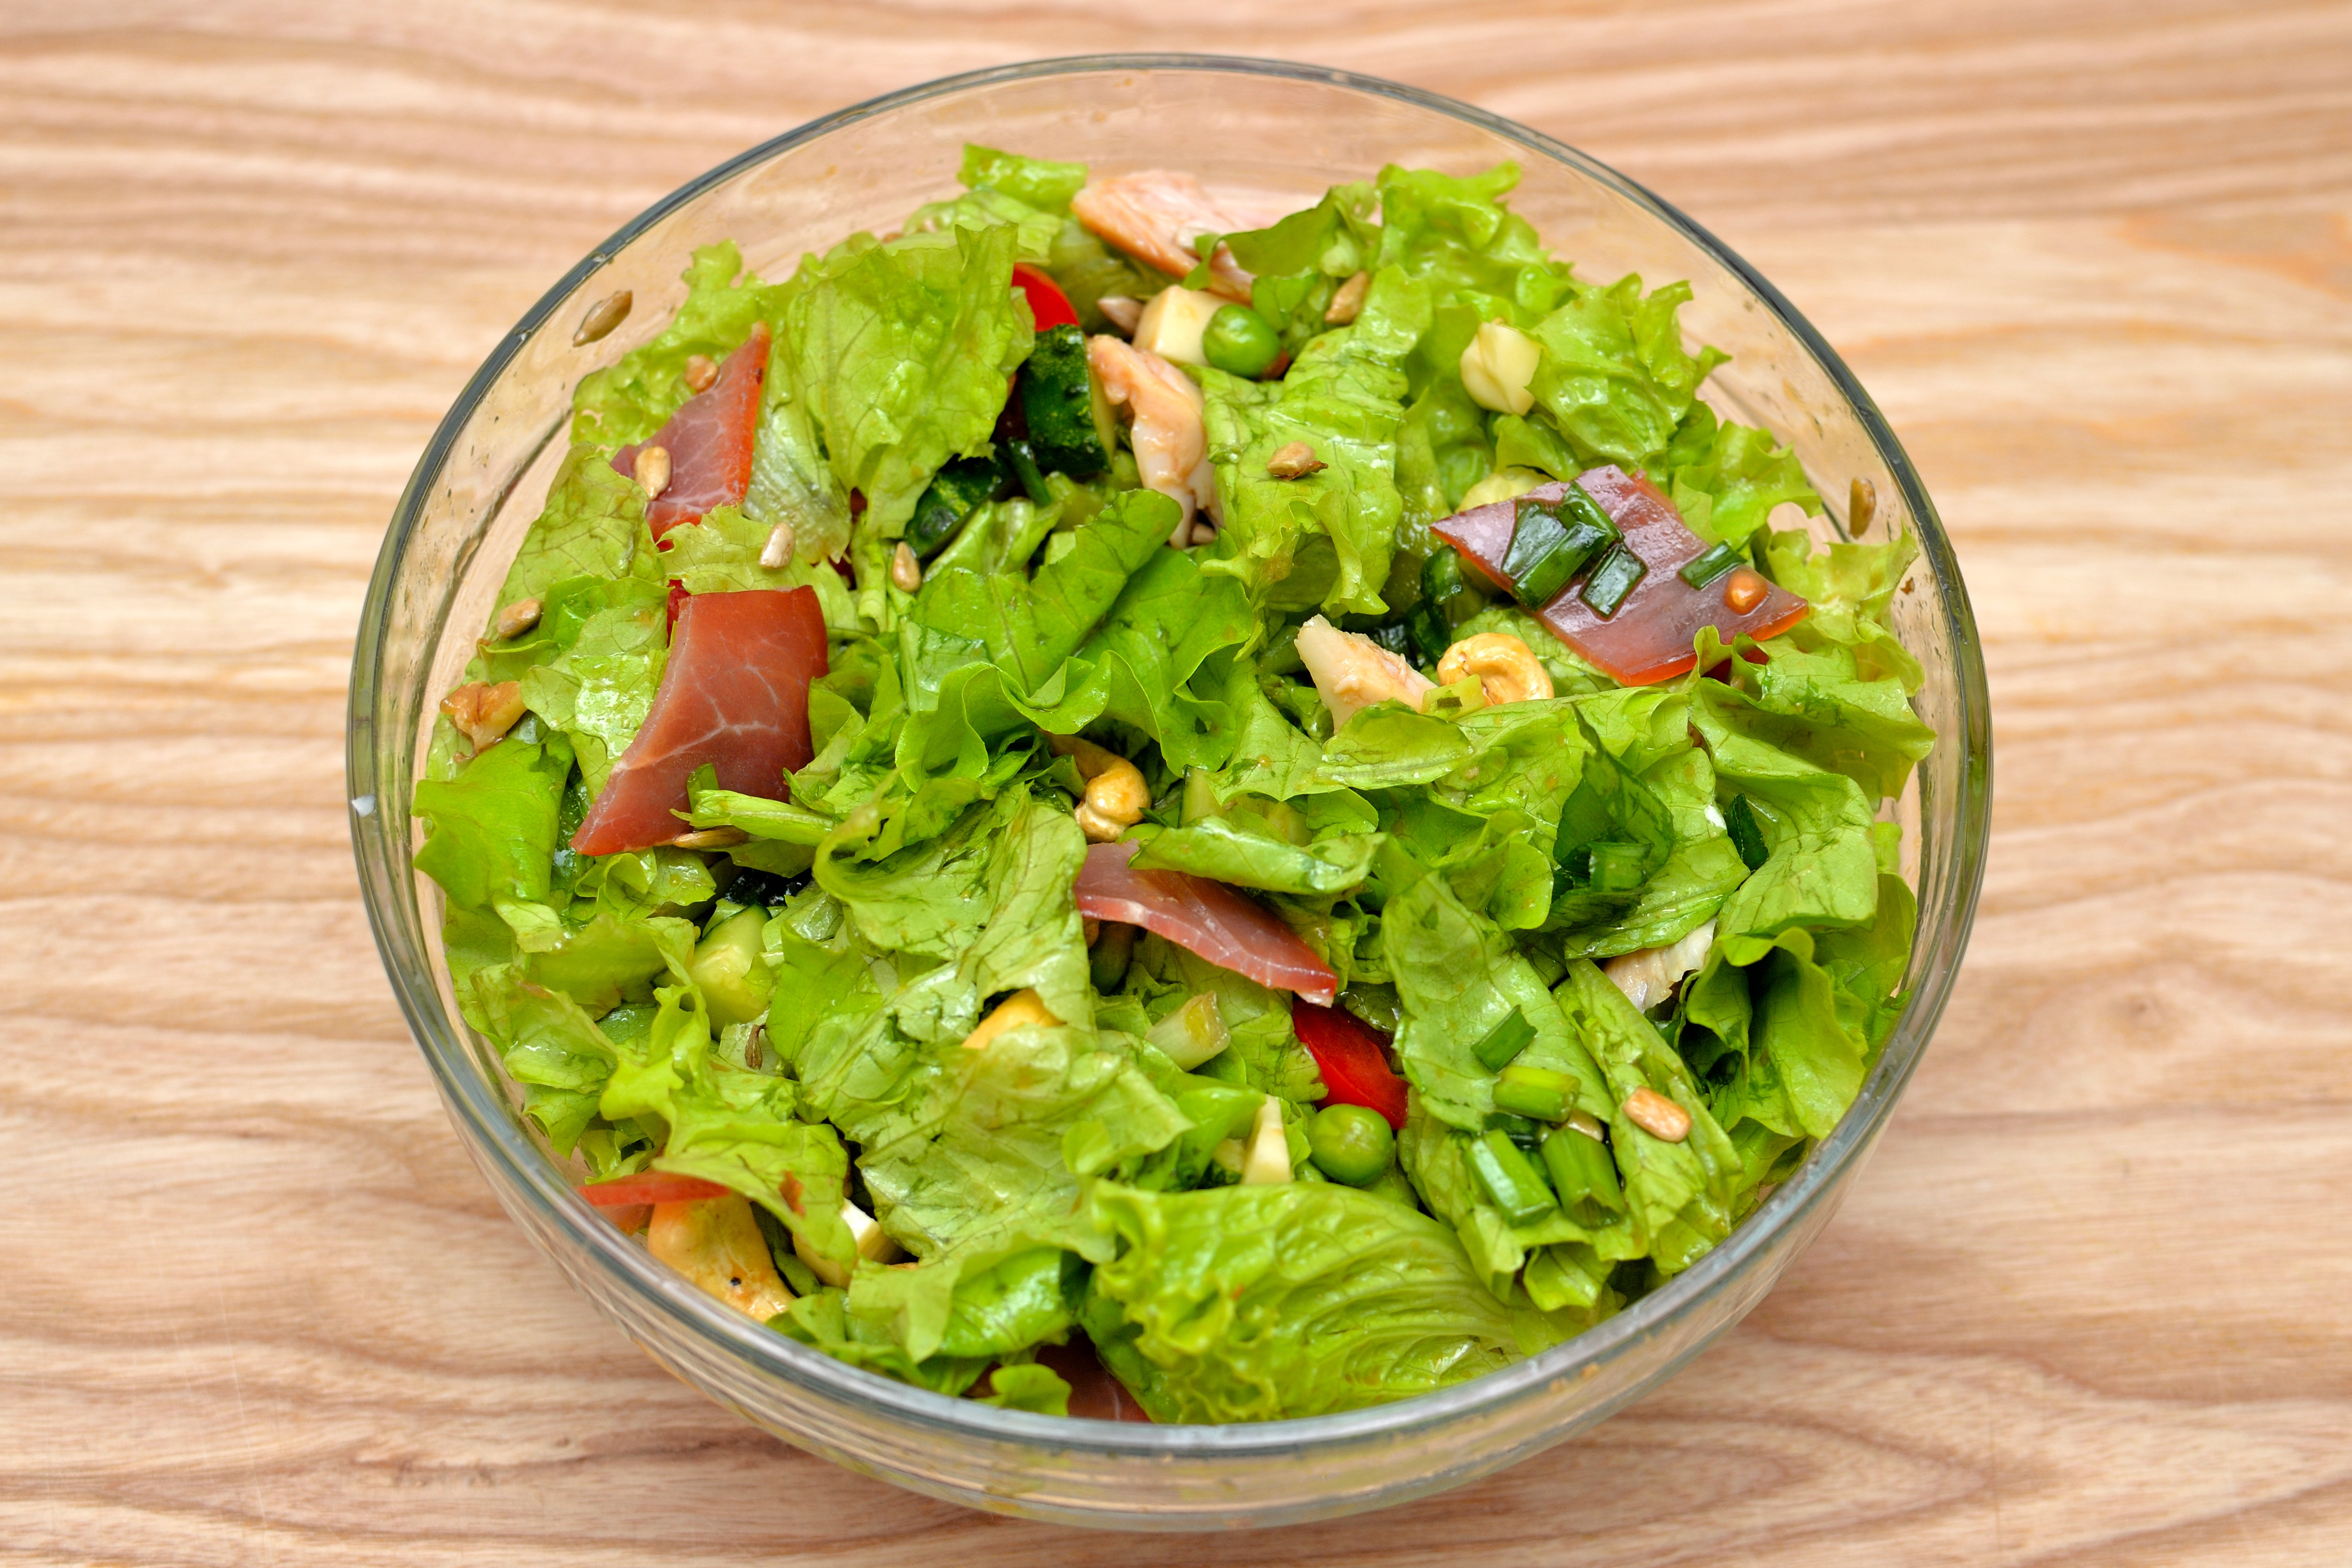 Are Salads Healthy  How to Make a Healthy Salad that Tastes Good 8 Steps